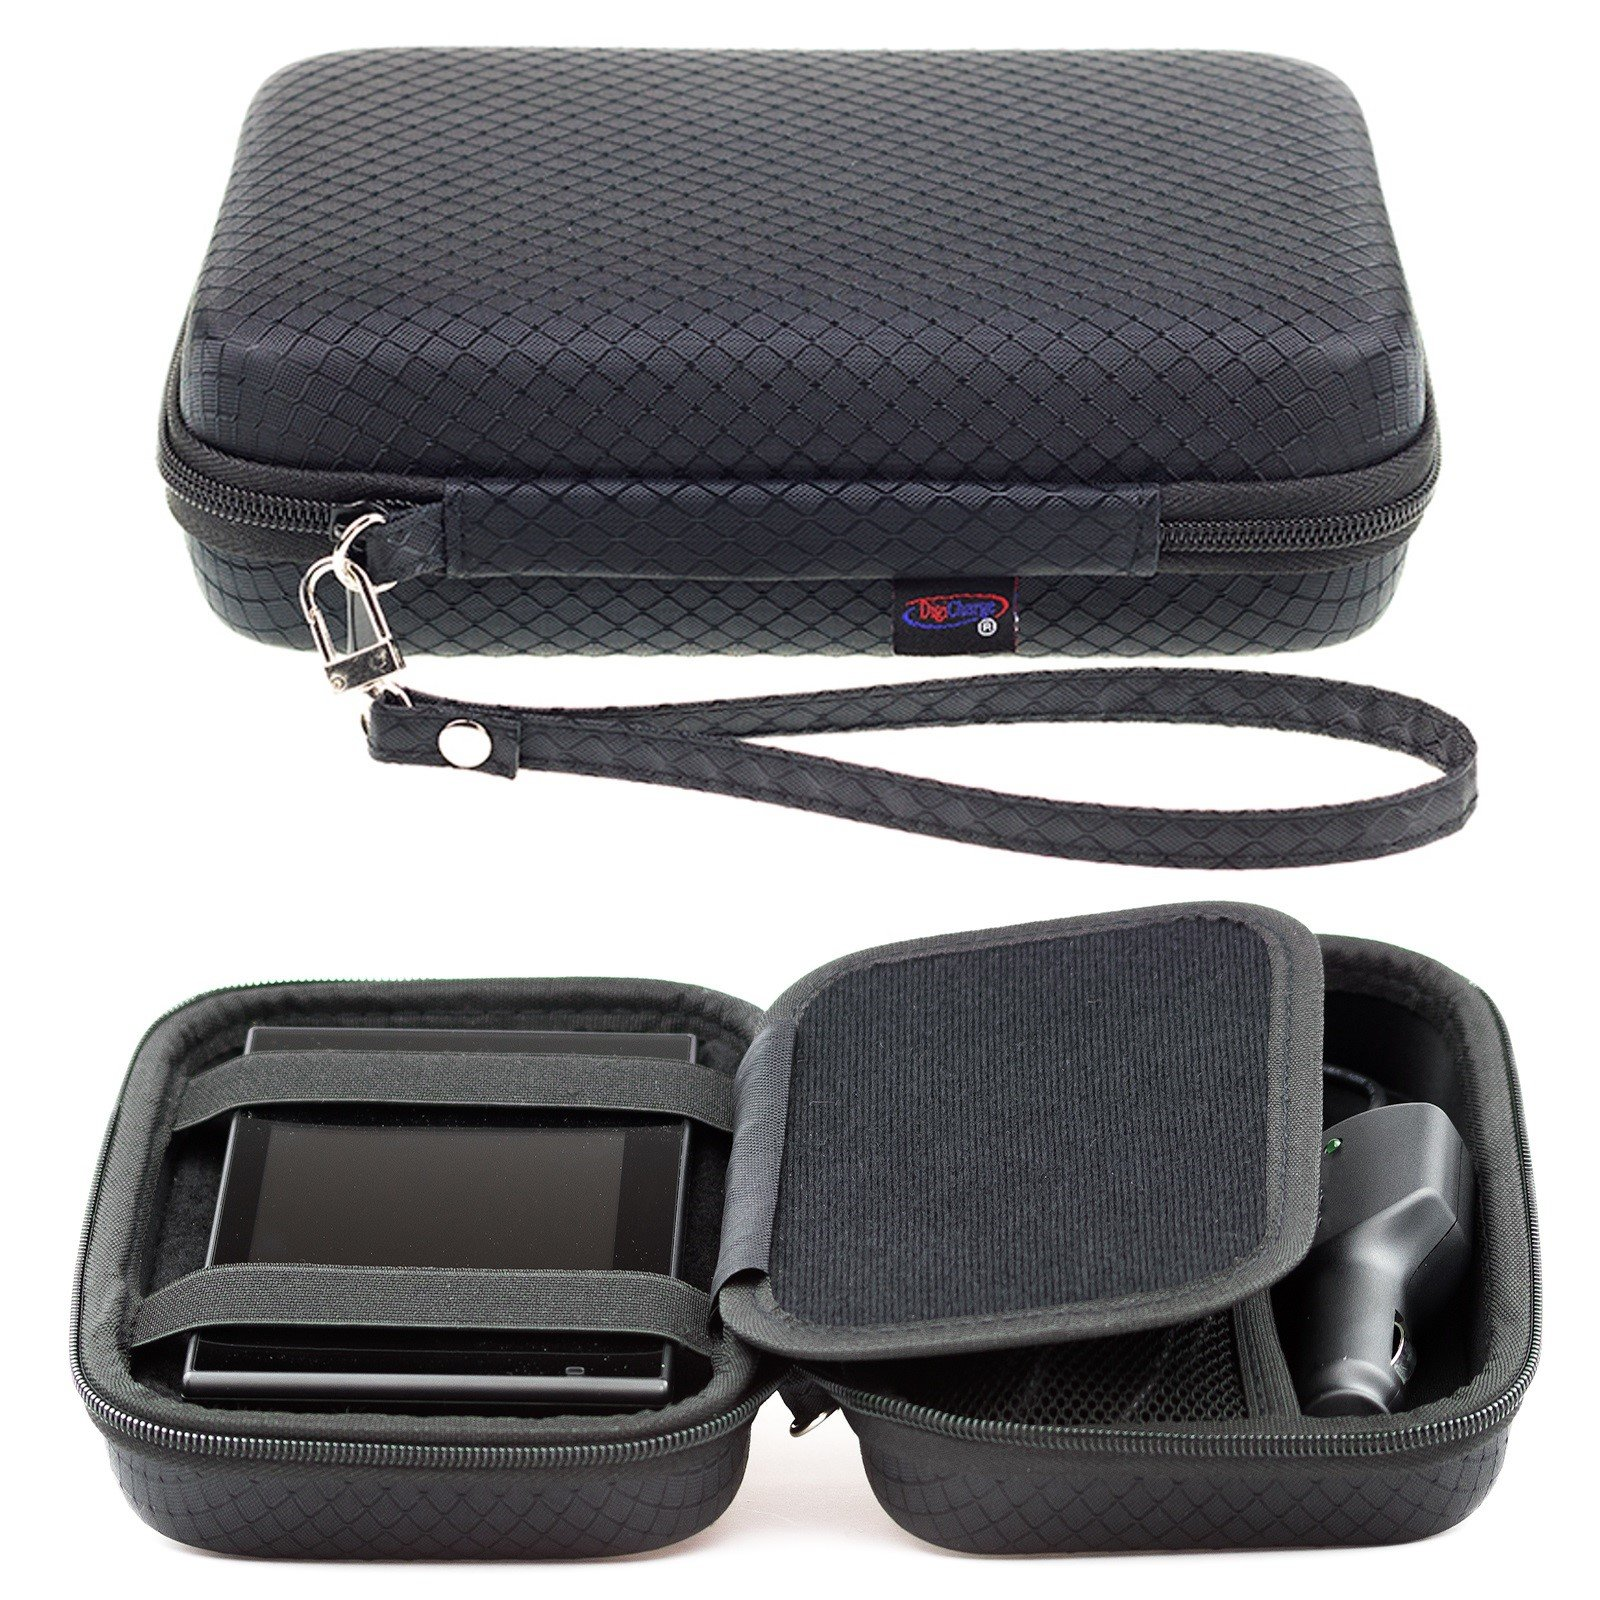 Hard Carrying Case for Garmin Dezl 780 RV 770 760 Dezlcam Fleet 790 780 Nuvi 2797 2757 Magellan RoadMate 9612T-LM RV9365T-LMB RV9165T-LM RV9145 Sunways Aonerex Junsun Shenen Xgody 7-Inch Truck RV GPS